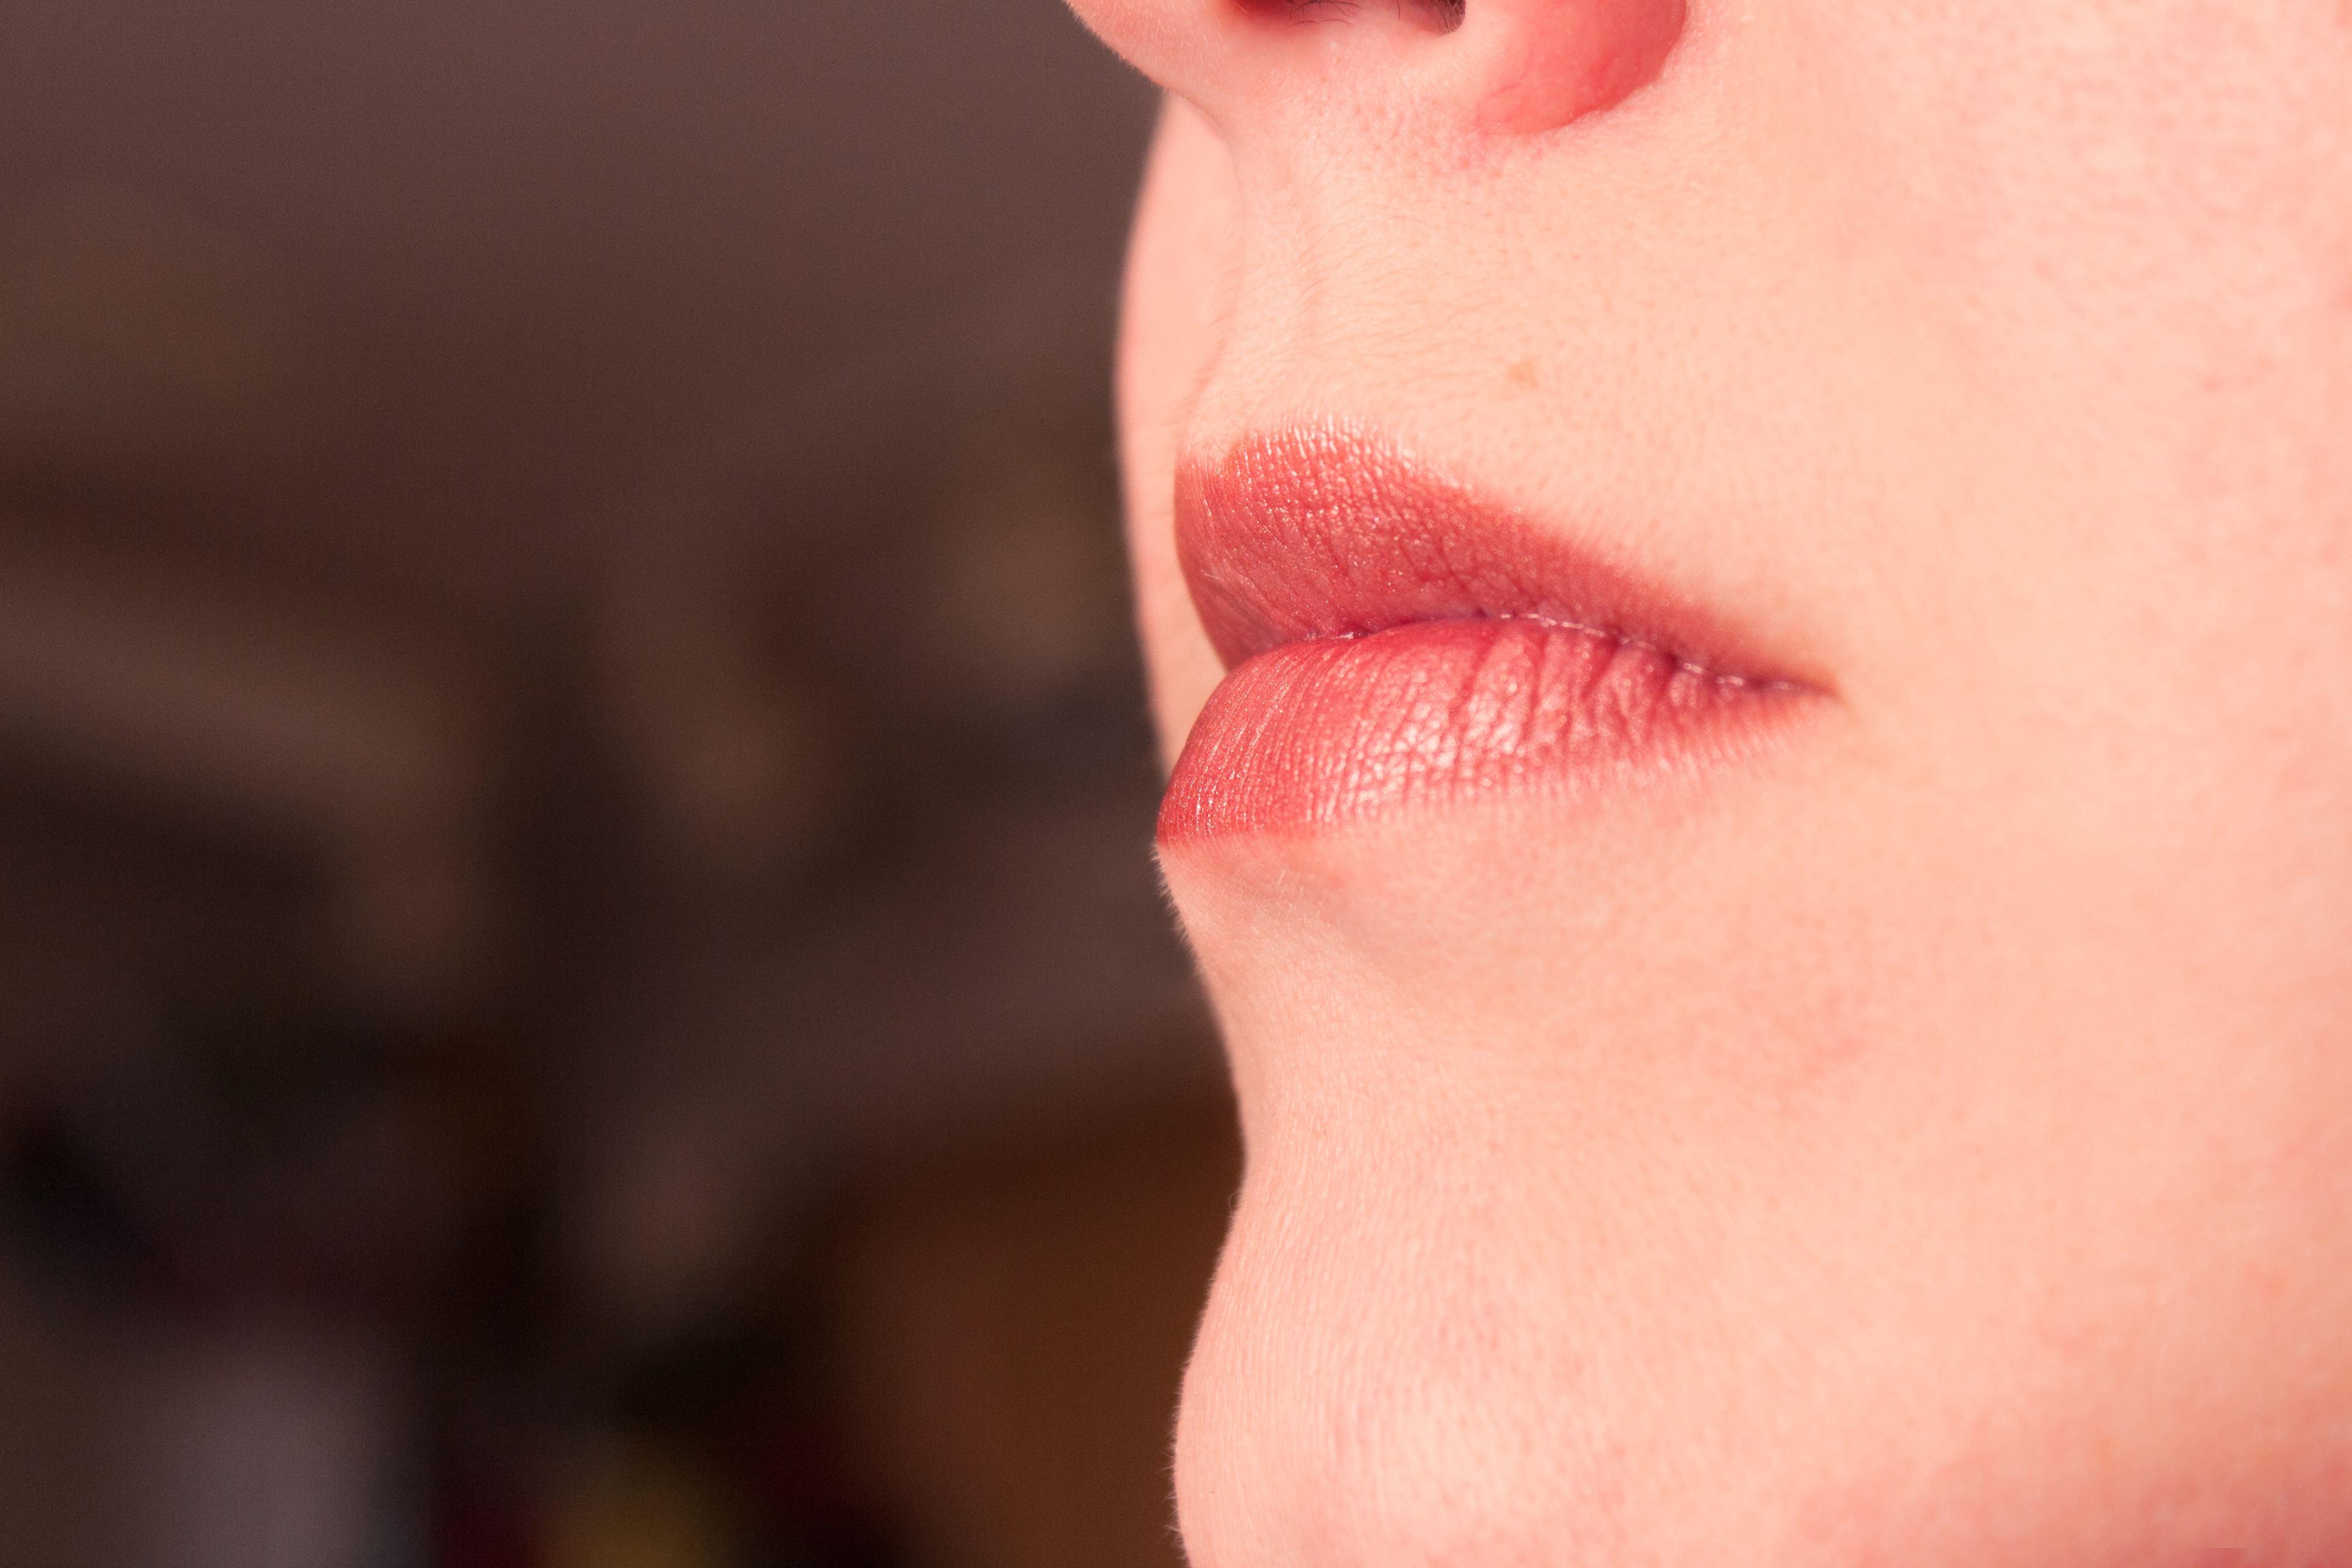 Blisters on Chapped Lips